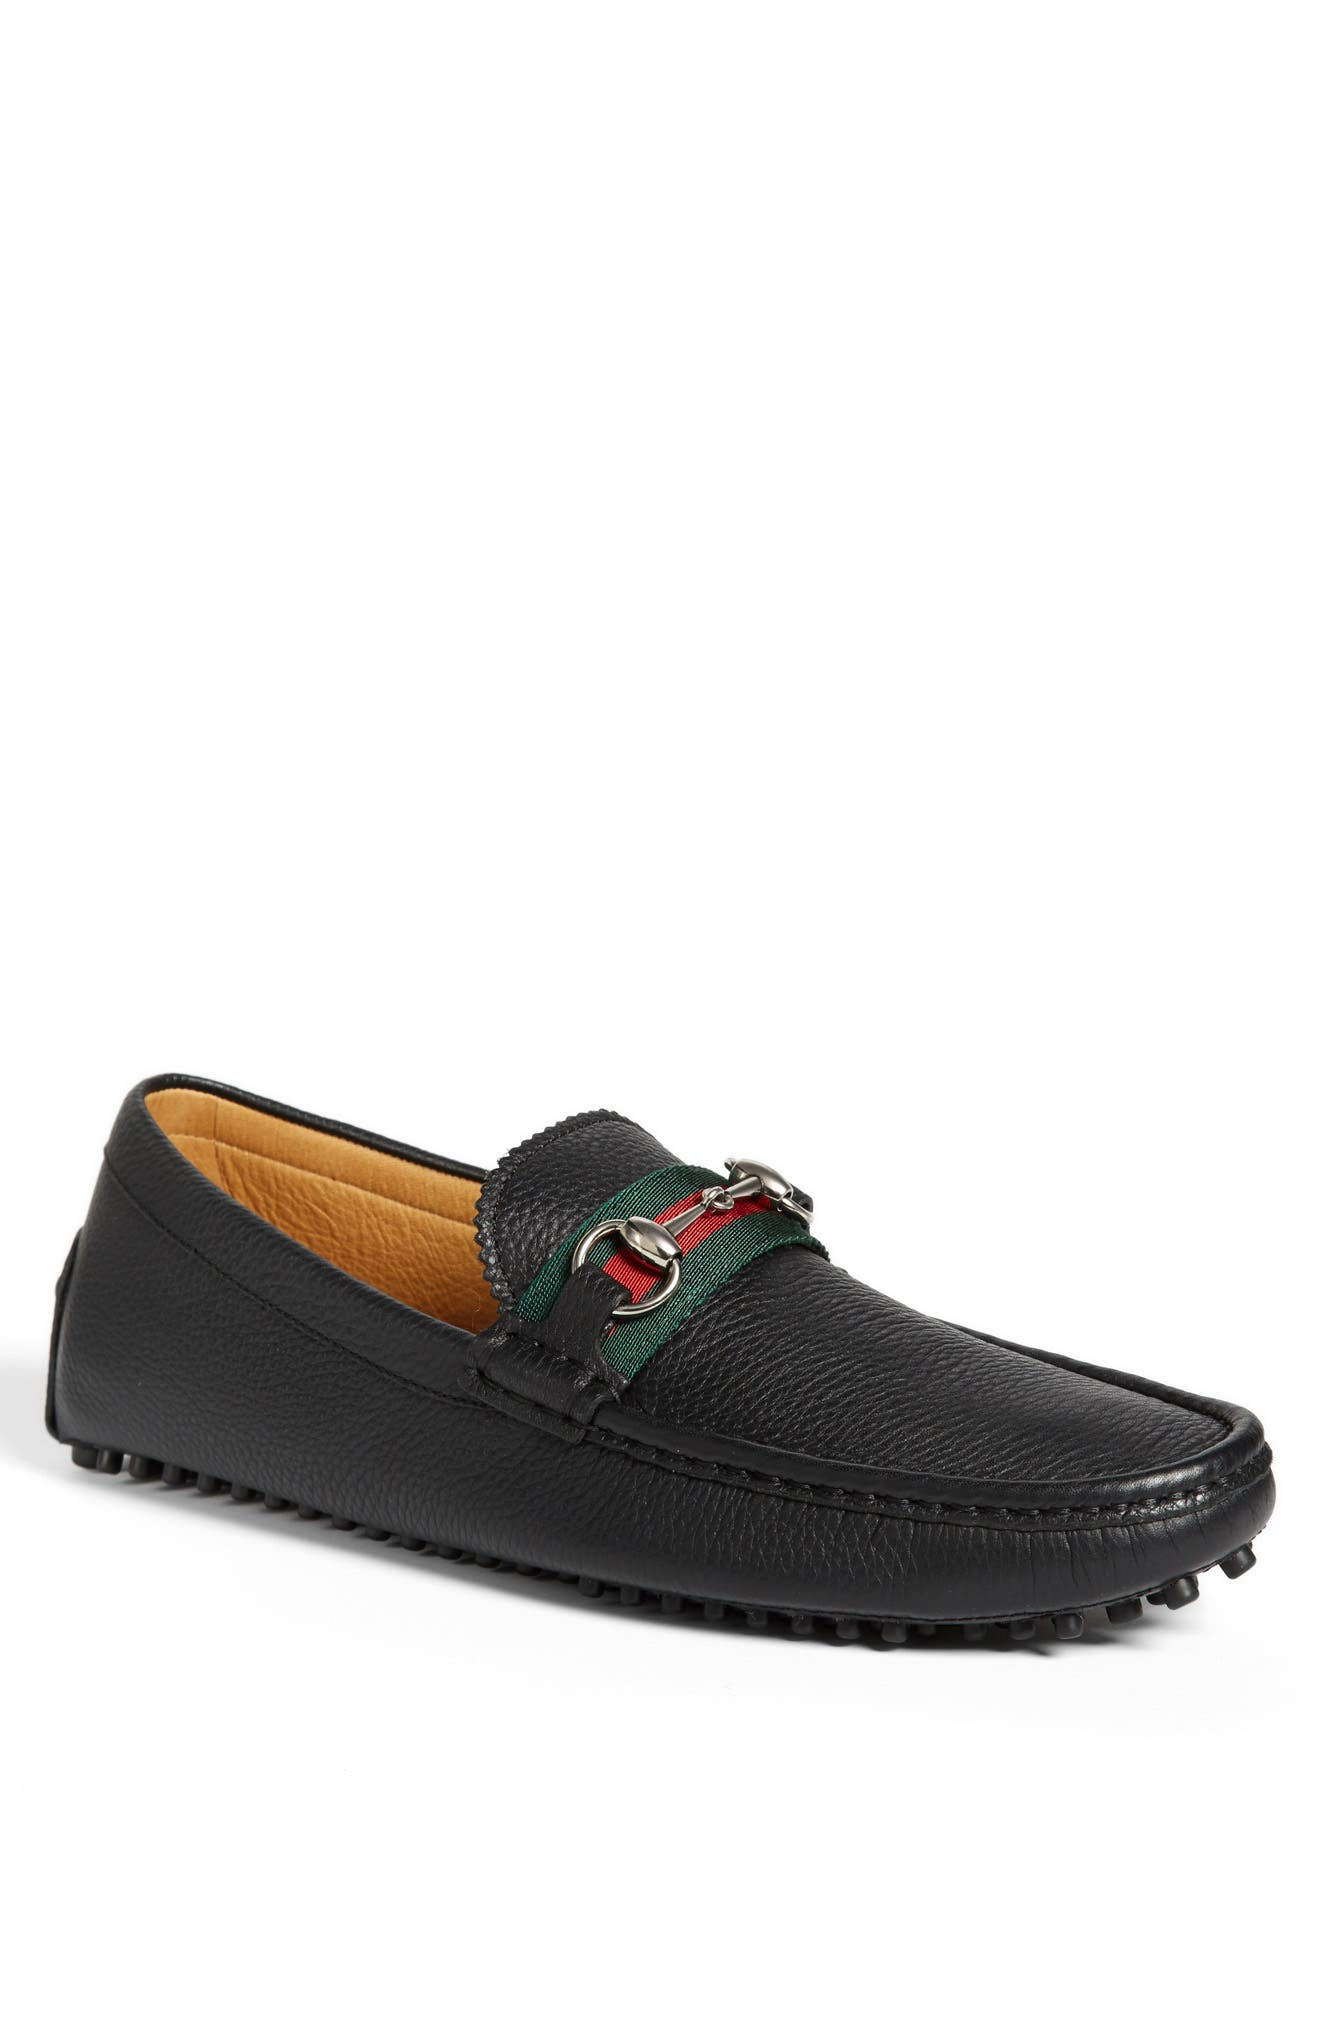 'Damo' Driving Shoe,                         Main,                         color, BLACK